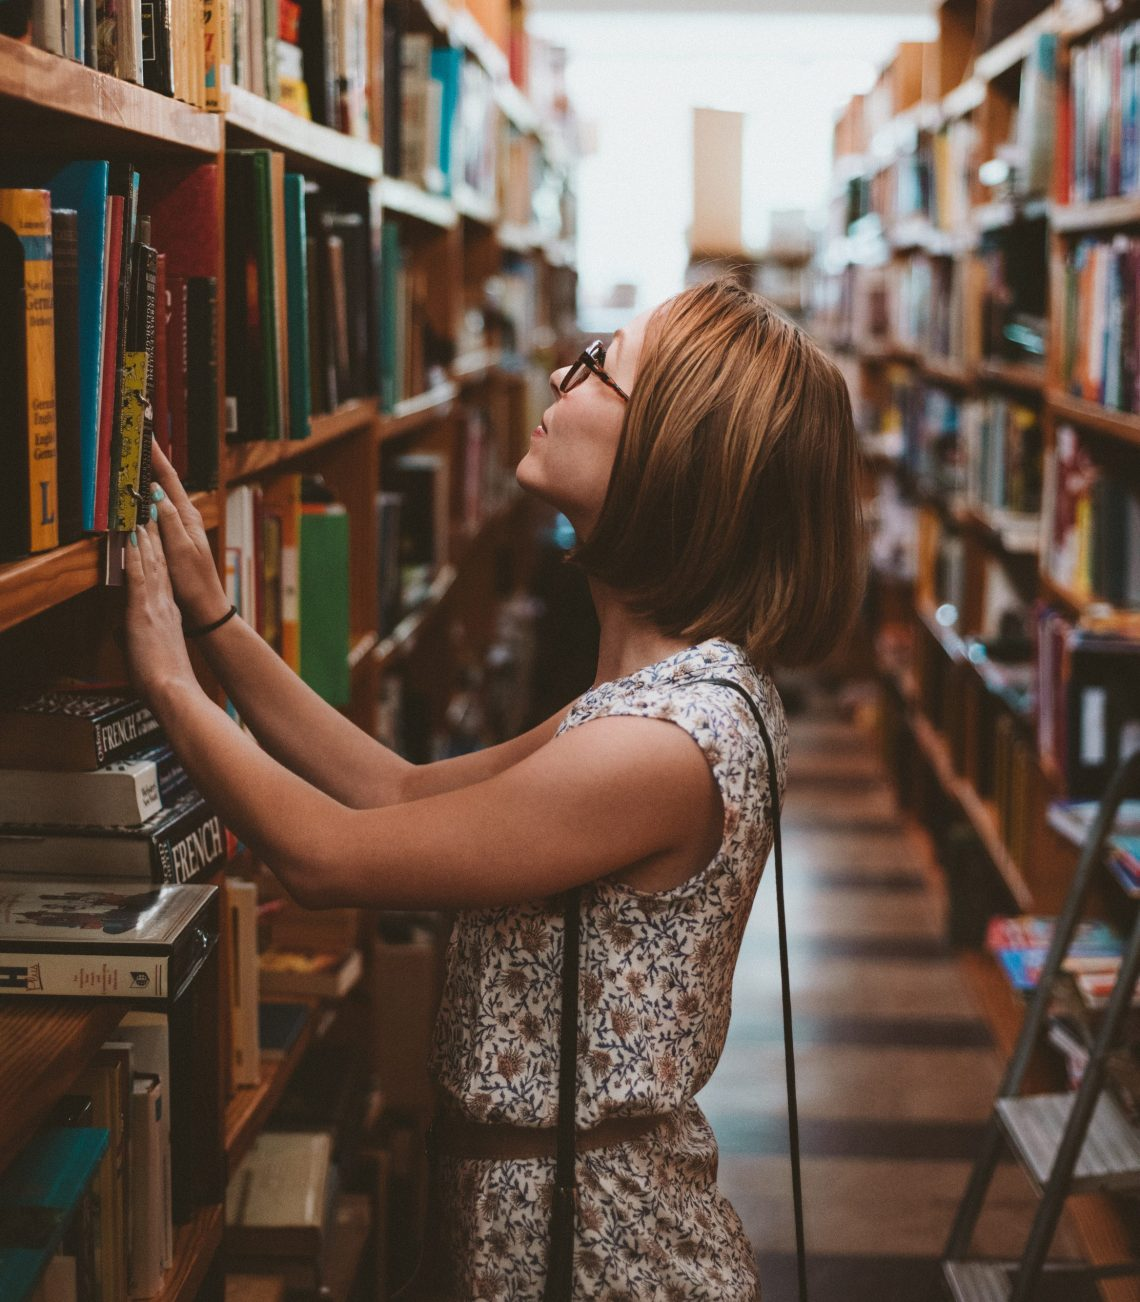 The Top 3 Books That Completely Changed My Perception On Life